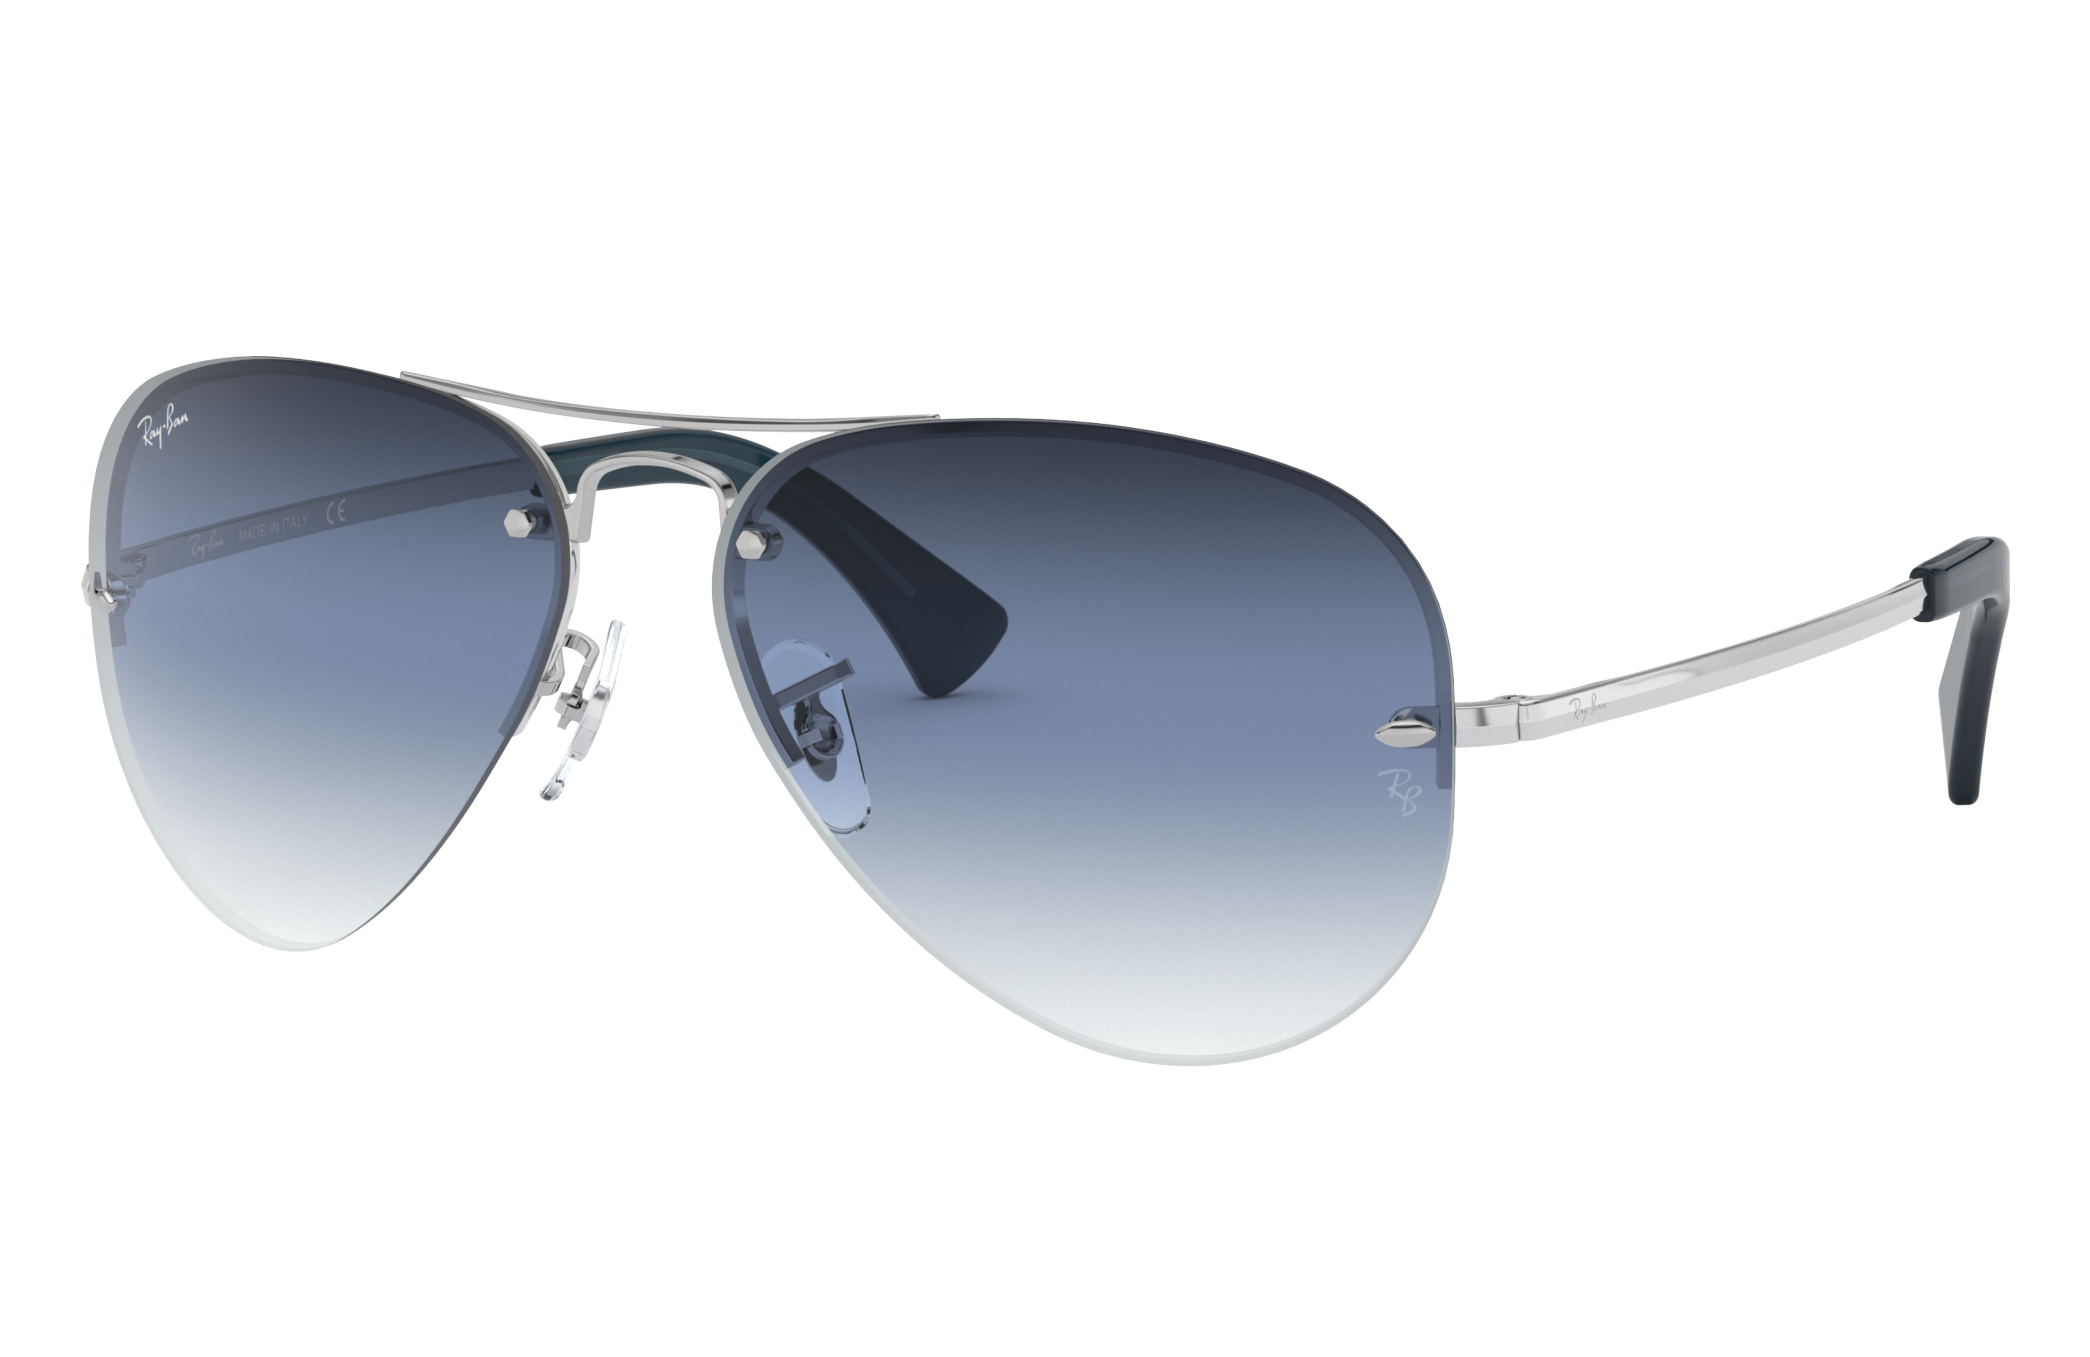 Ray-Ban Rb3449 Silver, Blue Lenses - RB3449